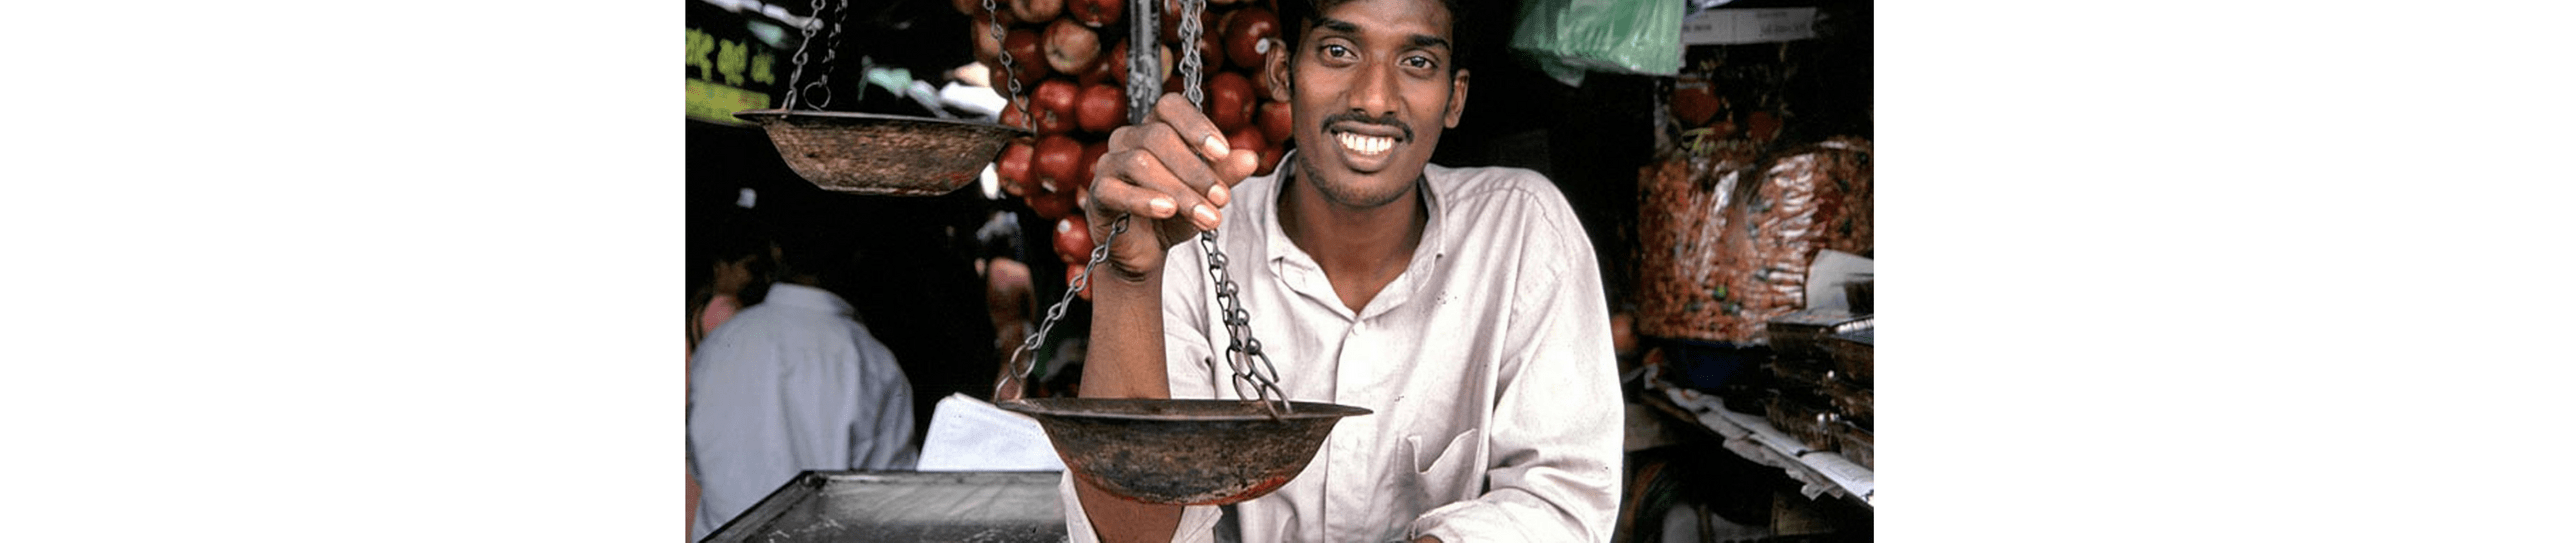 A photo of a smiling shopkeeper in Sri Lanka holding a scale